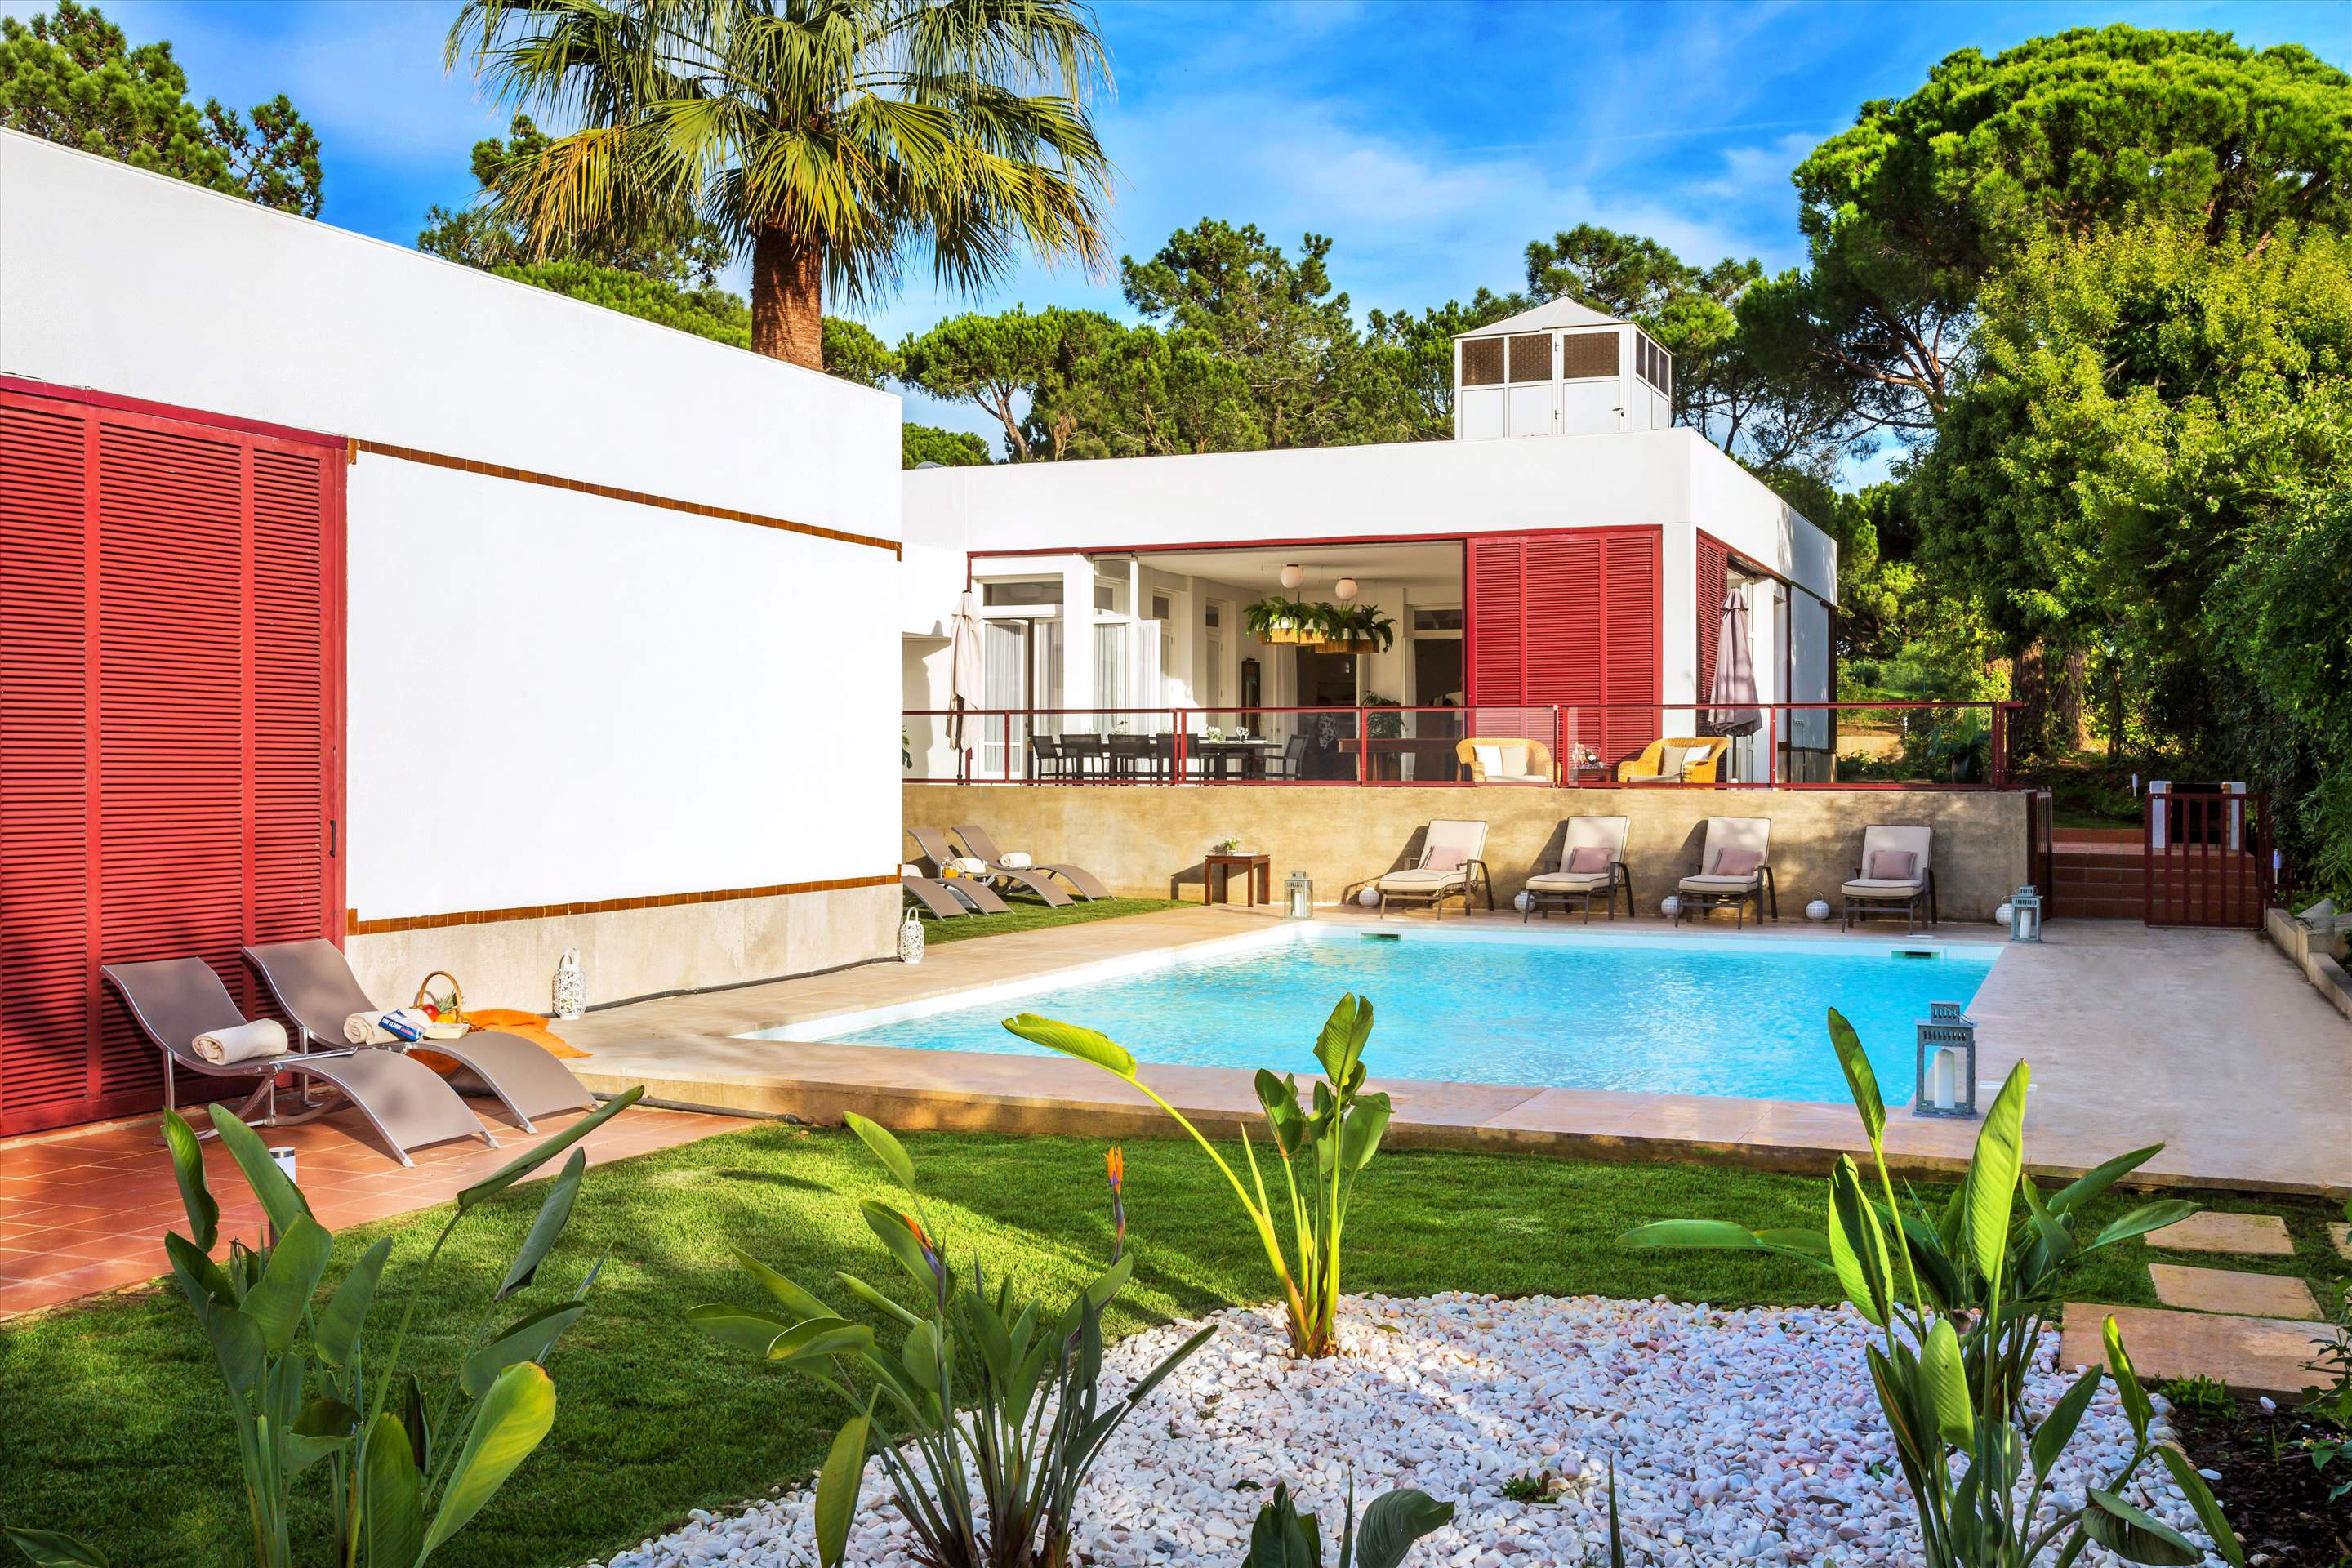 Villa Cegonha, 4 bedroom villa in Vale do Lobo, Algarve Photo #1